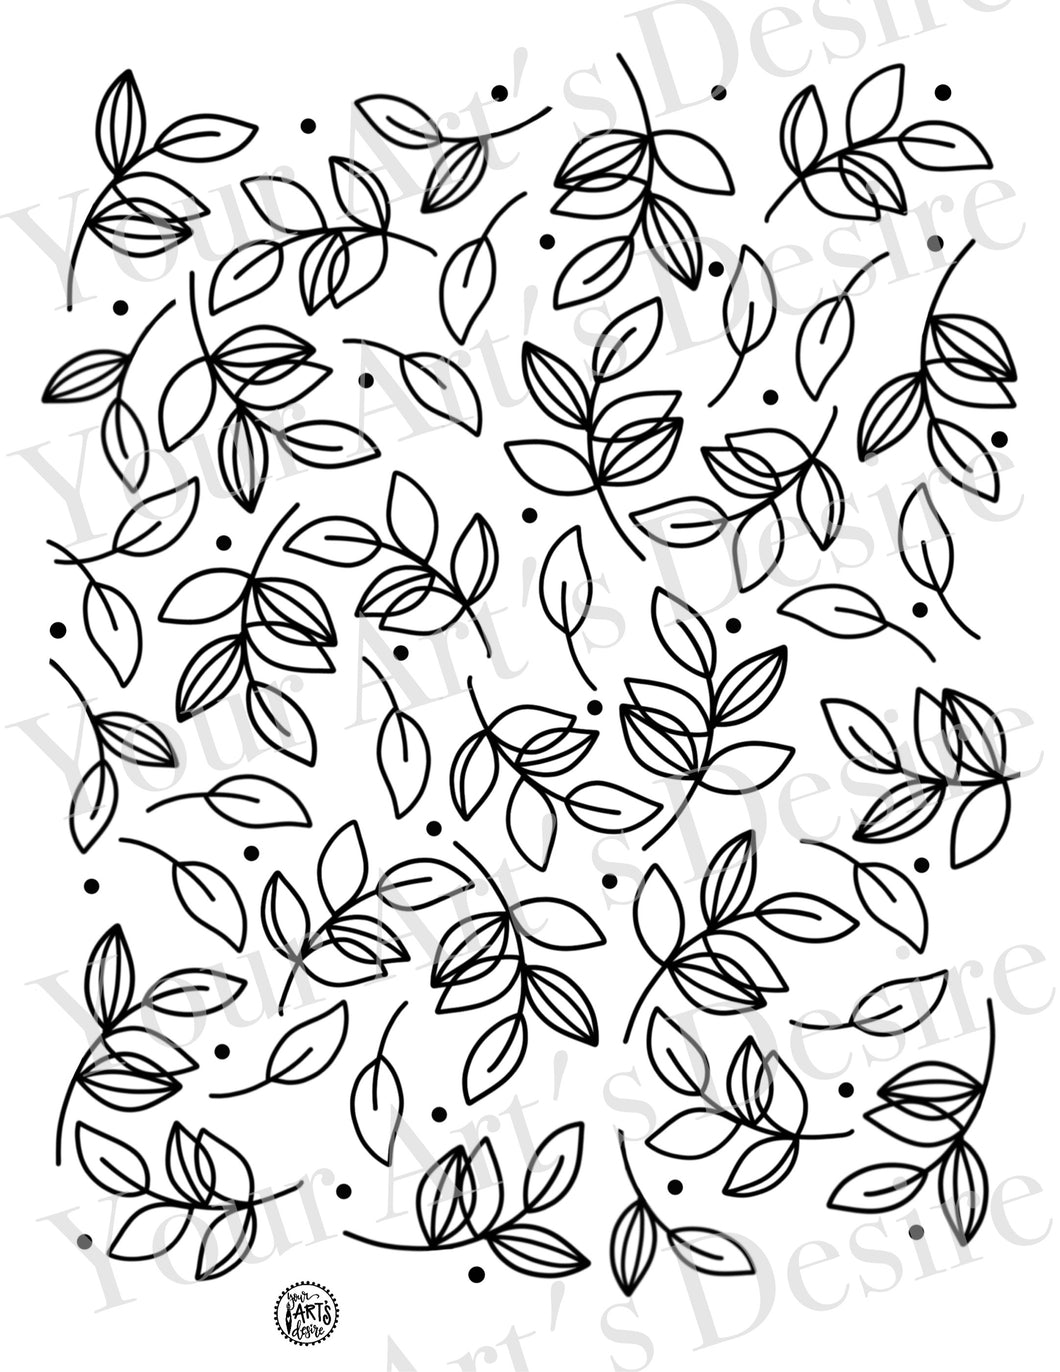 Whimsy Leaf Pattern